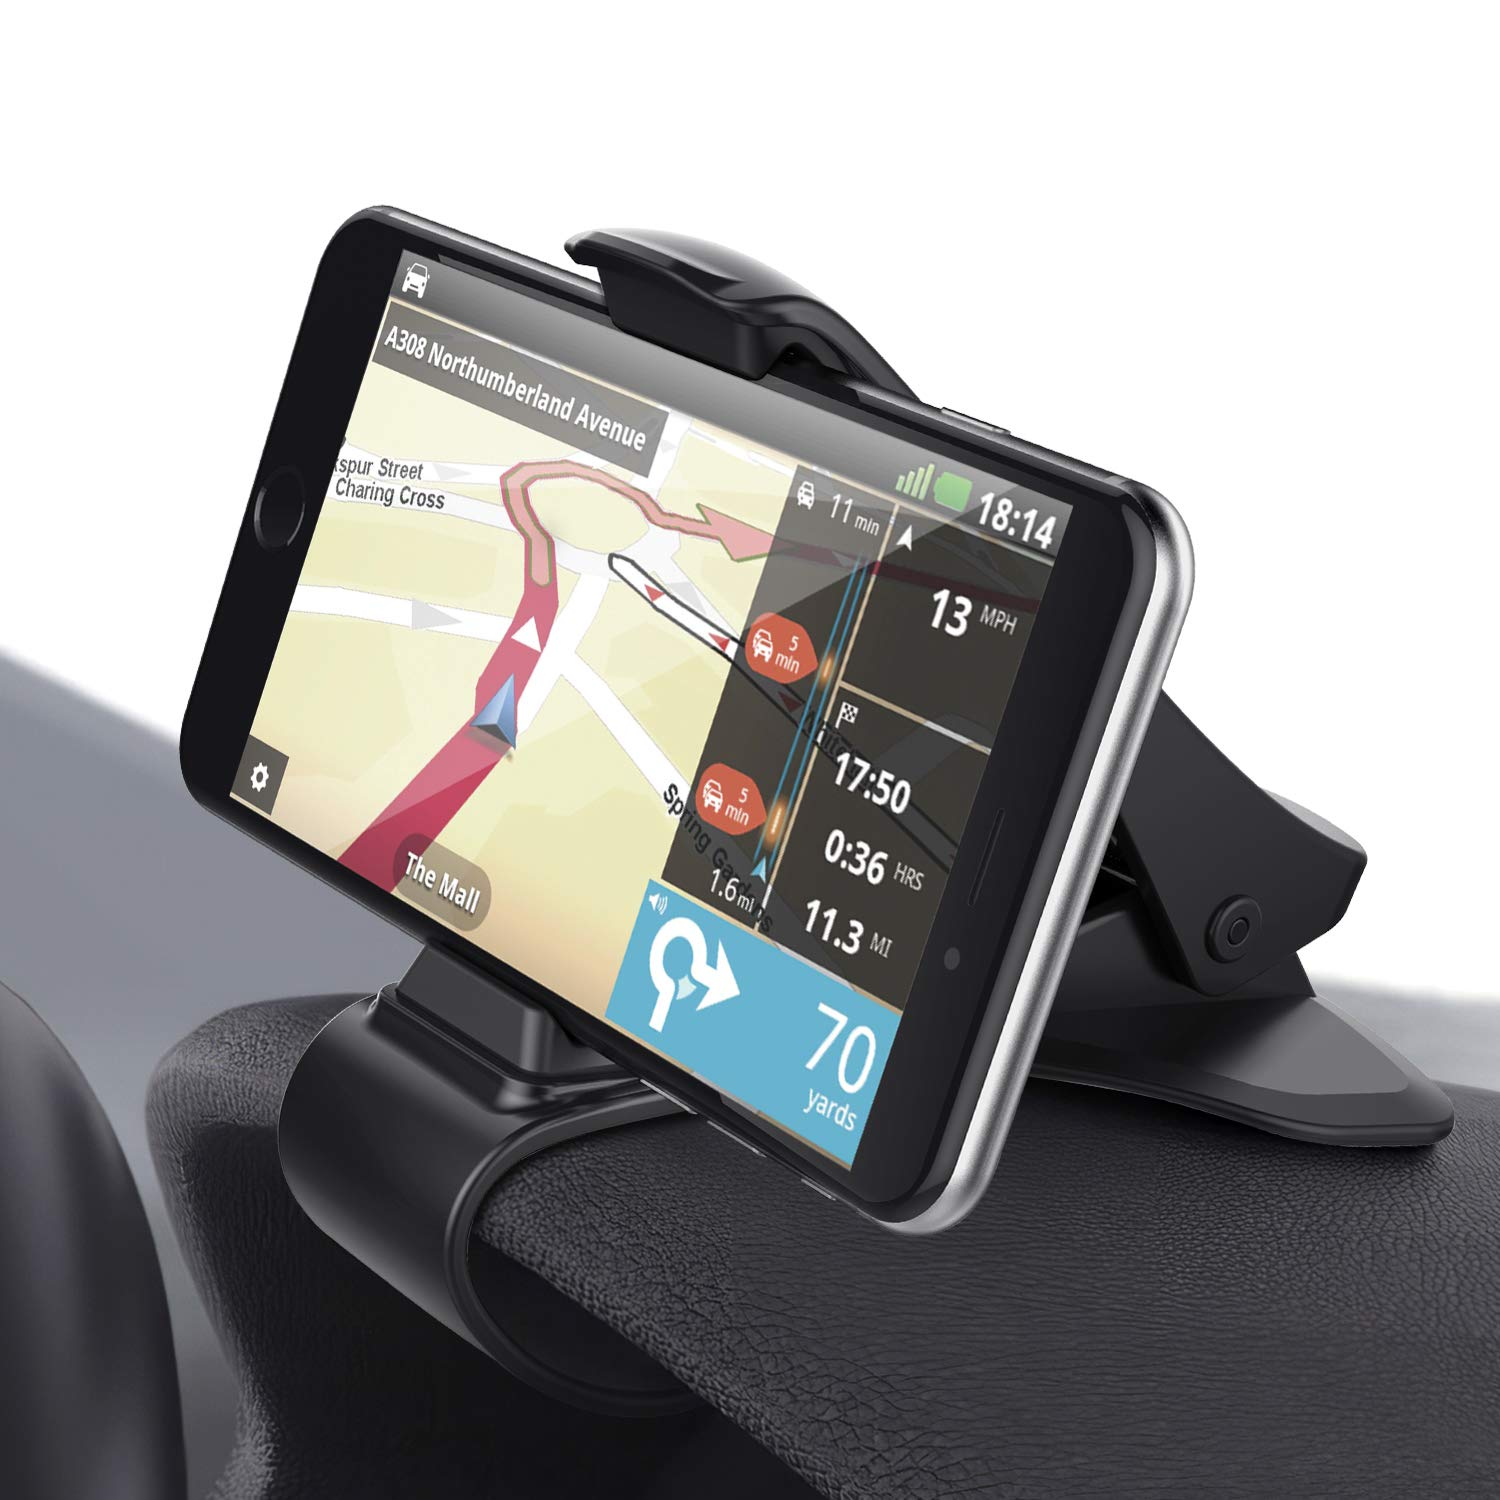 """1 Pack Car Phone Holder Dashboard Google Elegant Choise Durable Non-Slip HUD Car Phone Mount Compatible with iPhone Xs Max//XR//XS LG Samsung Galaxy S10 Plus//S10e Moto and More up to 6.5/"""""""